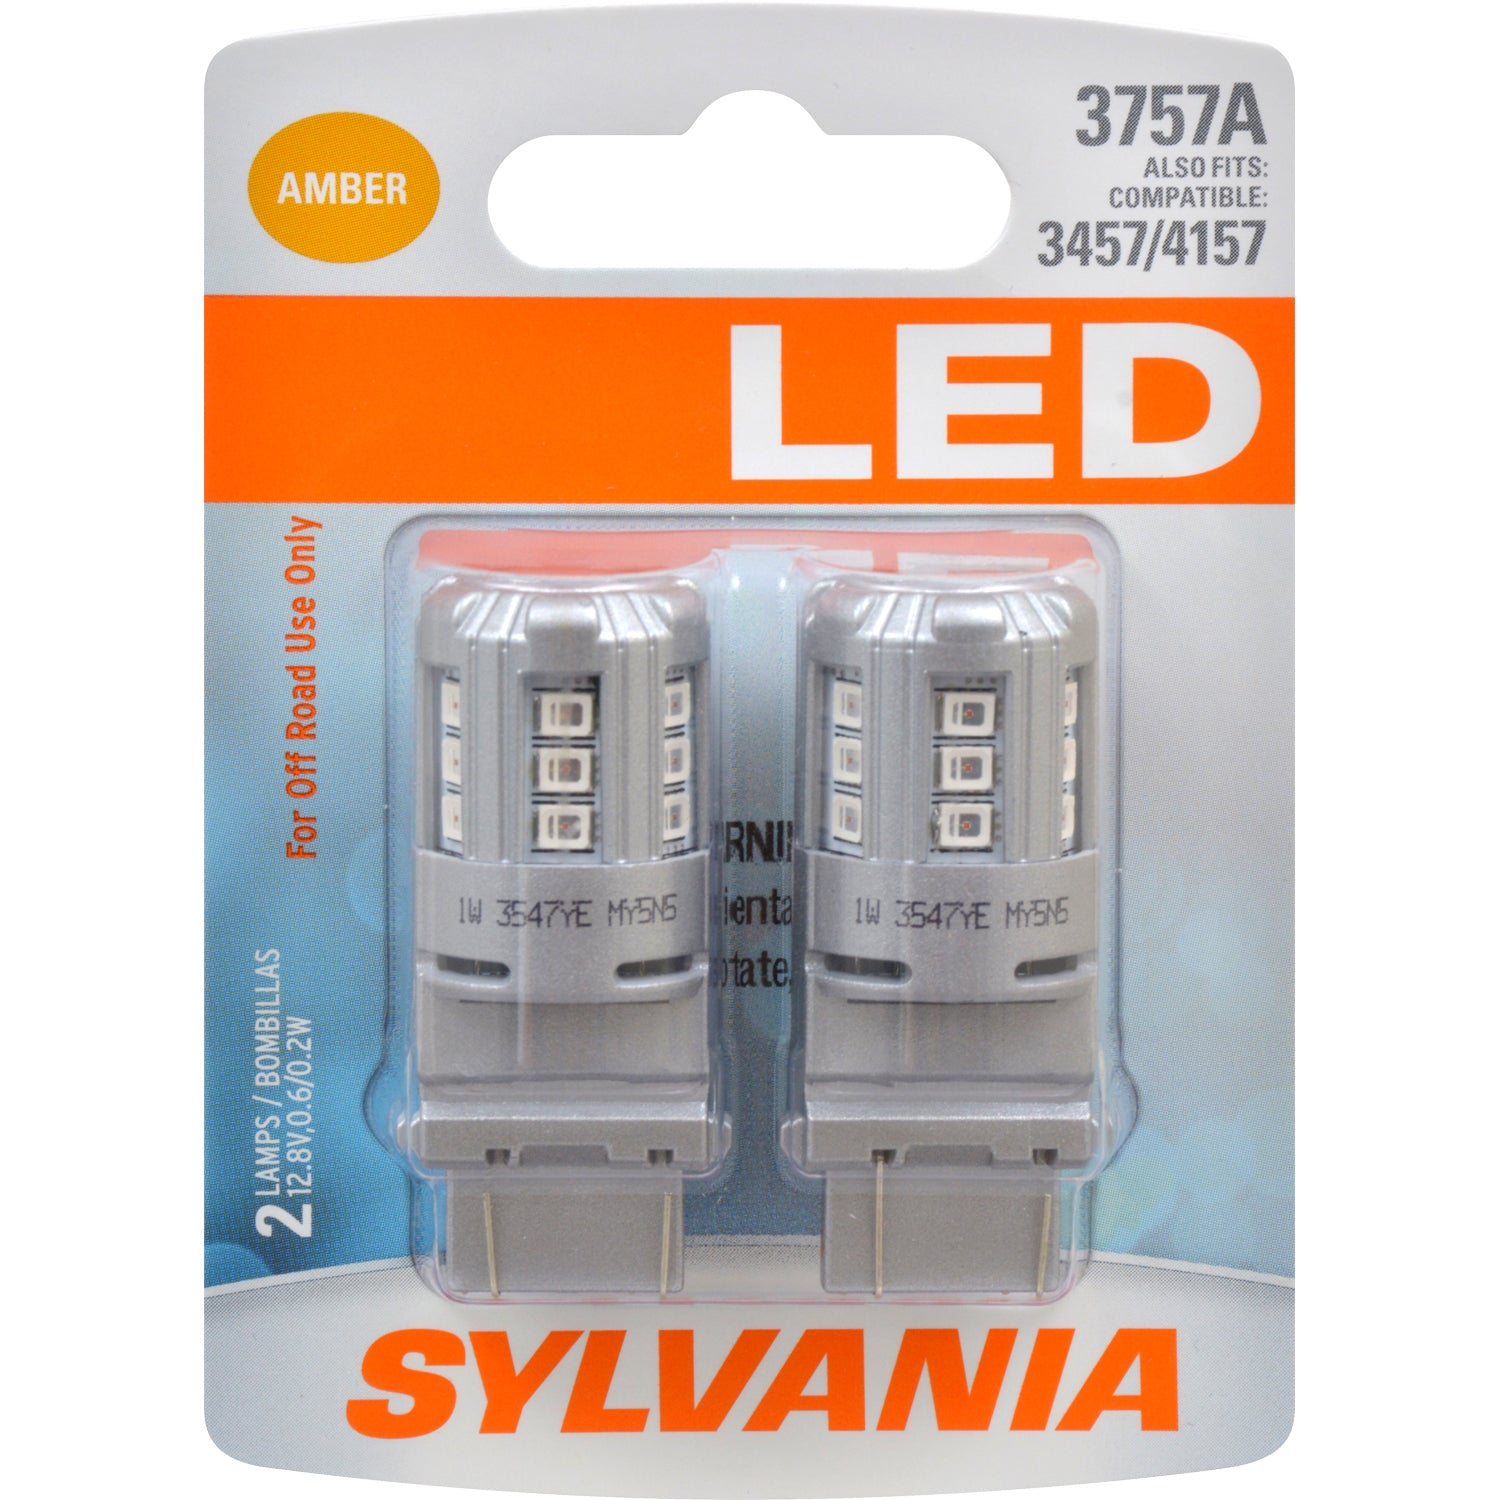 2-PK SYLVANIA 3757 PY27/7W Amber LED Automotive Bulb